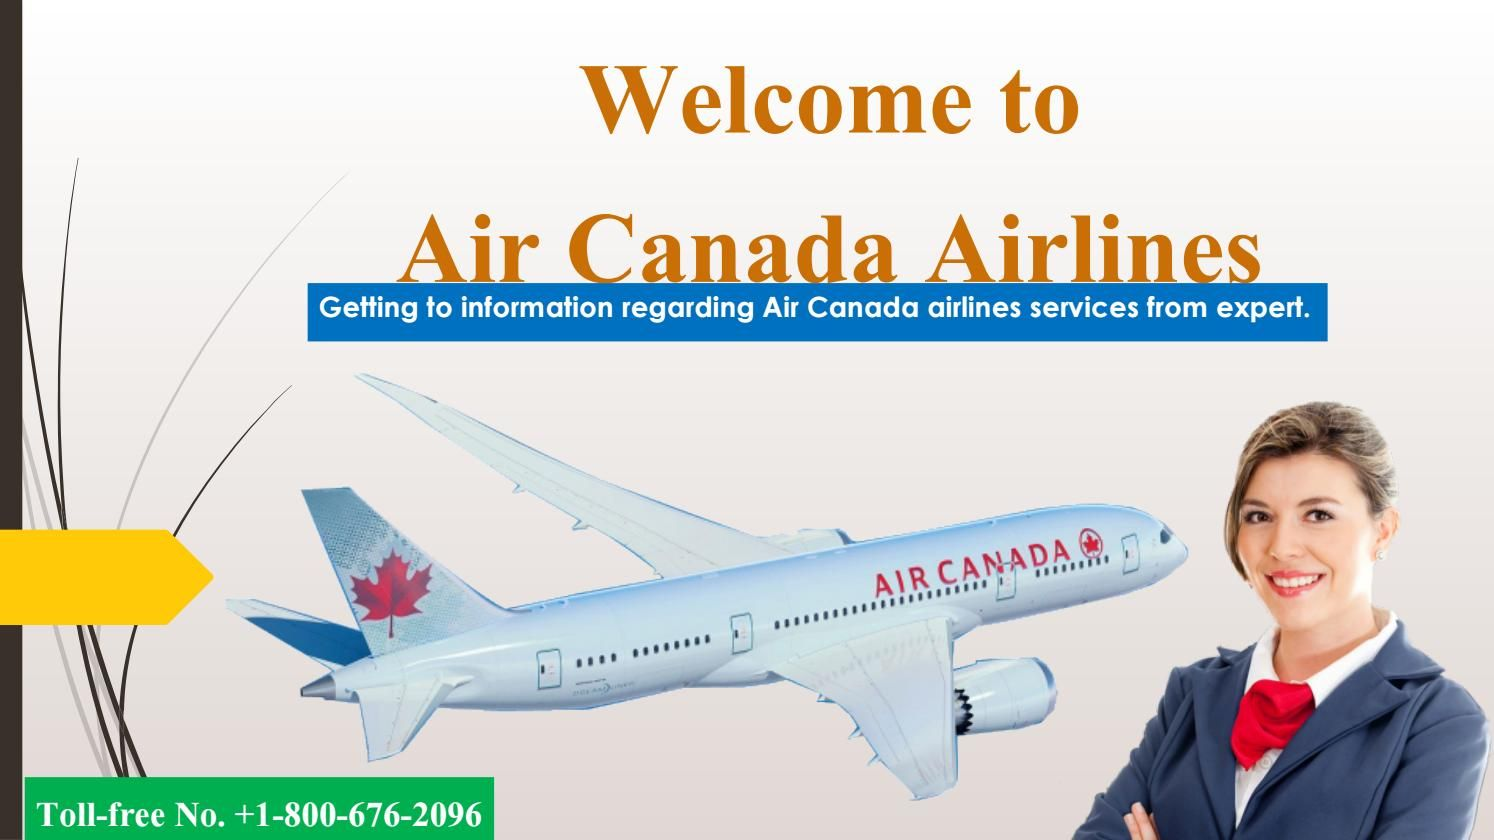 Flight Tracker Air Canada Map Just Dial @ +1 800 676 2096 Aircanada Airlines Number for Help